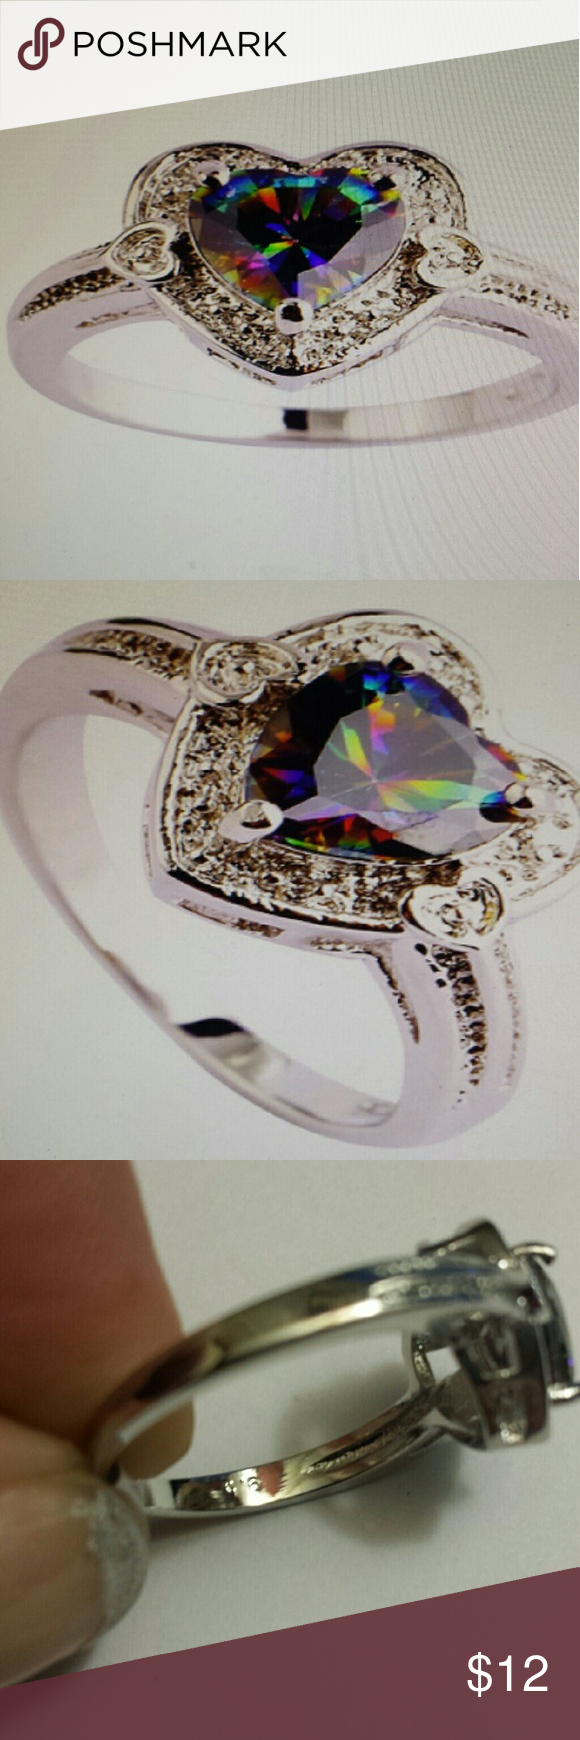 *FINAL PRICE DROP*  RAINBOW TOPAZ 925 sterling silver stamped, Gorgeous sparkle.  Size 8 Jewelry Rings